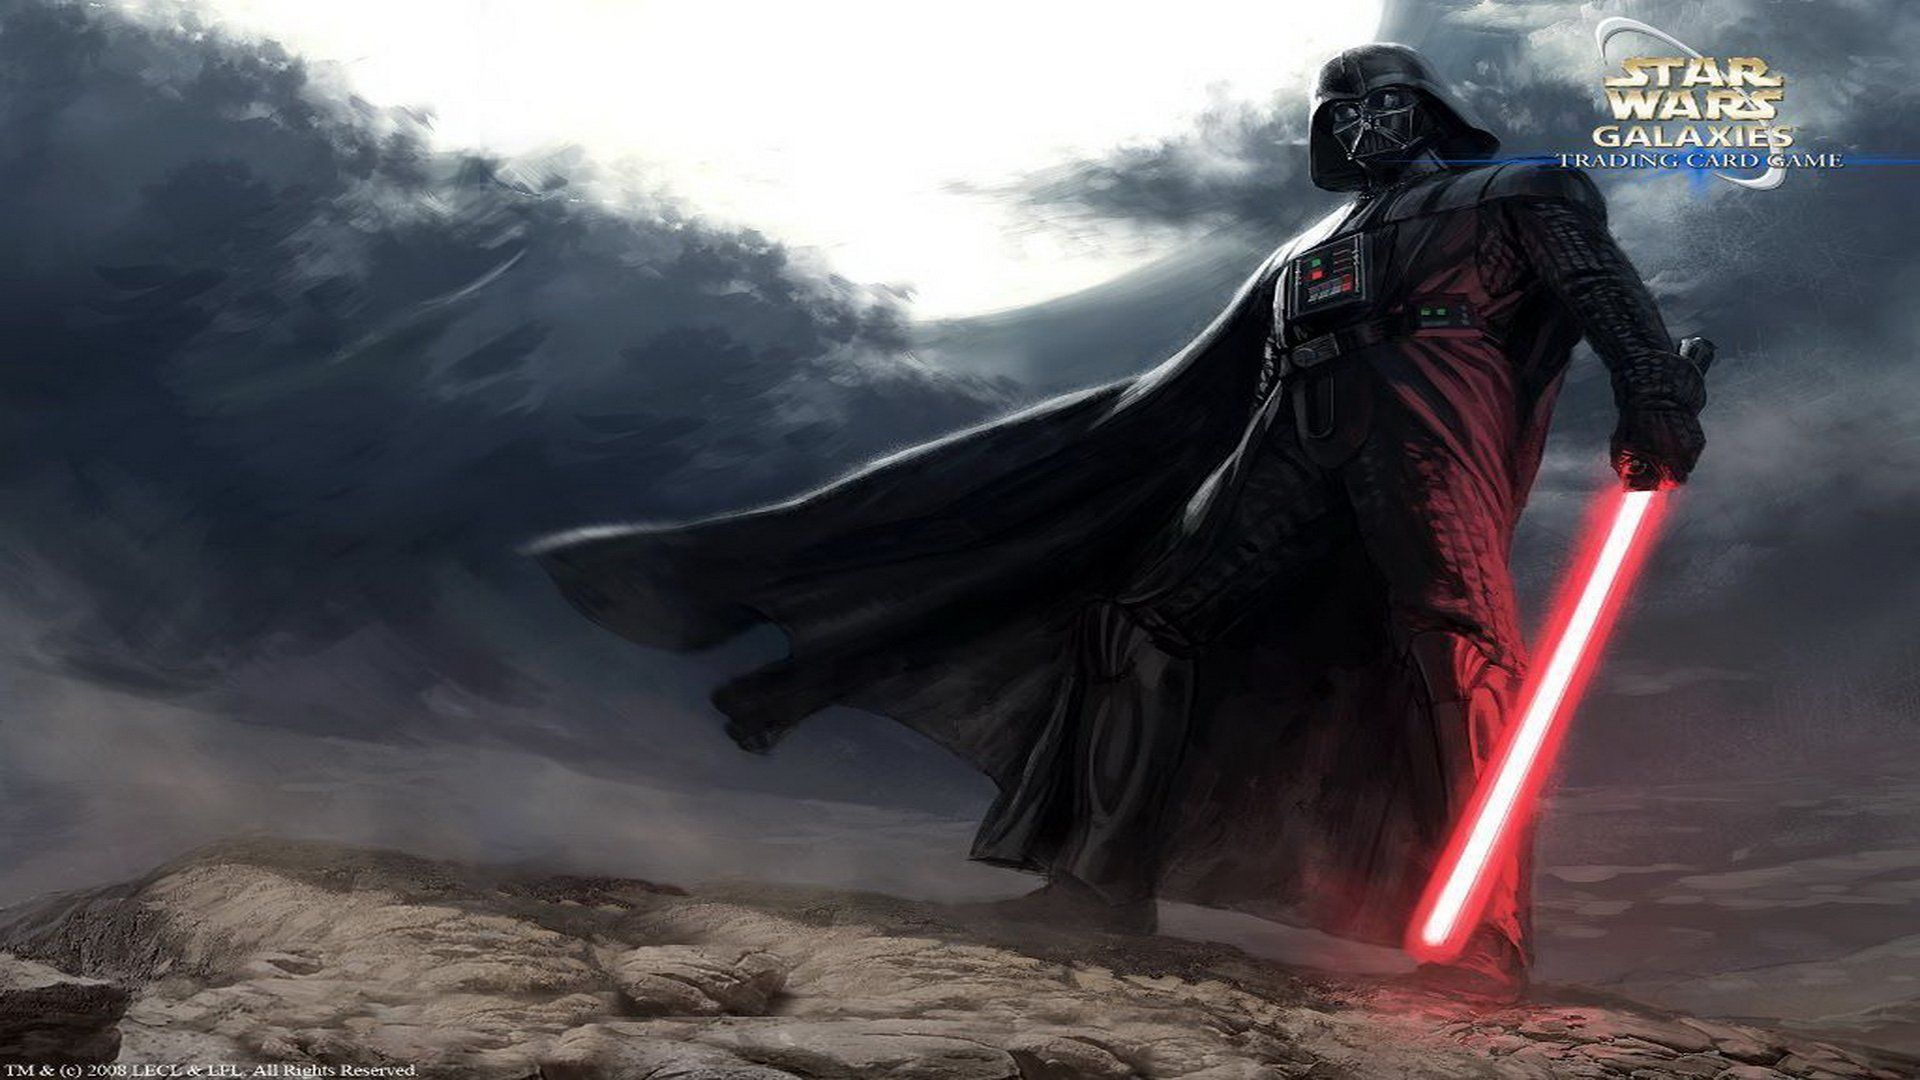 Star Wars Darth Vader Wallpaper » WallDevil